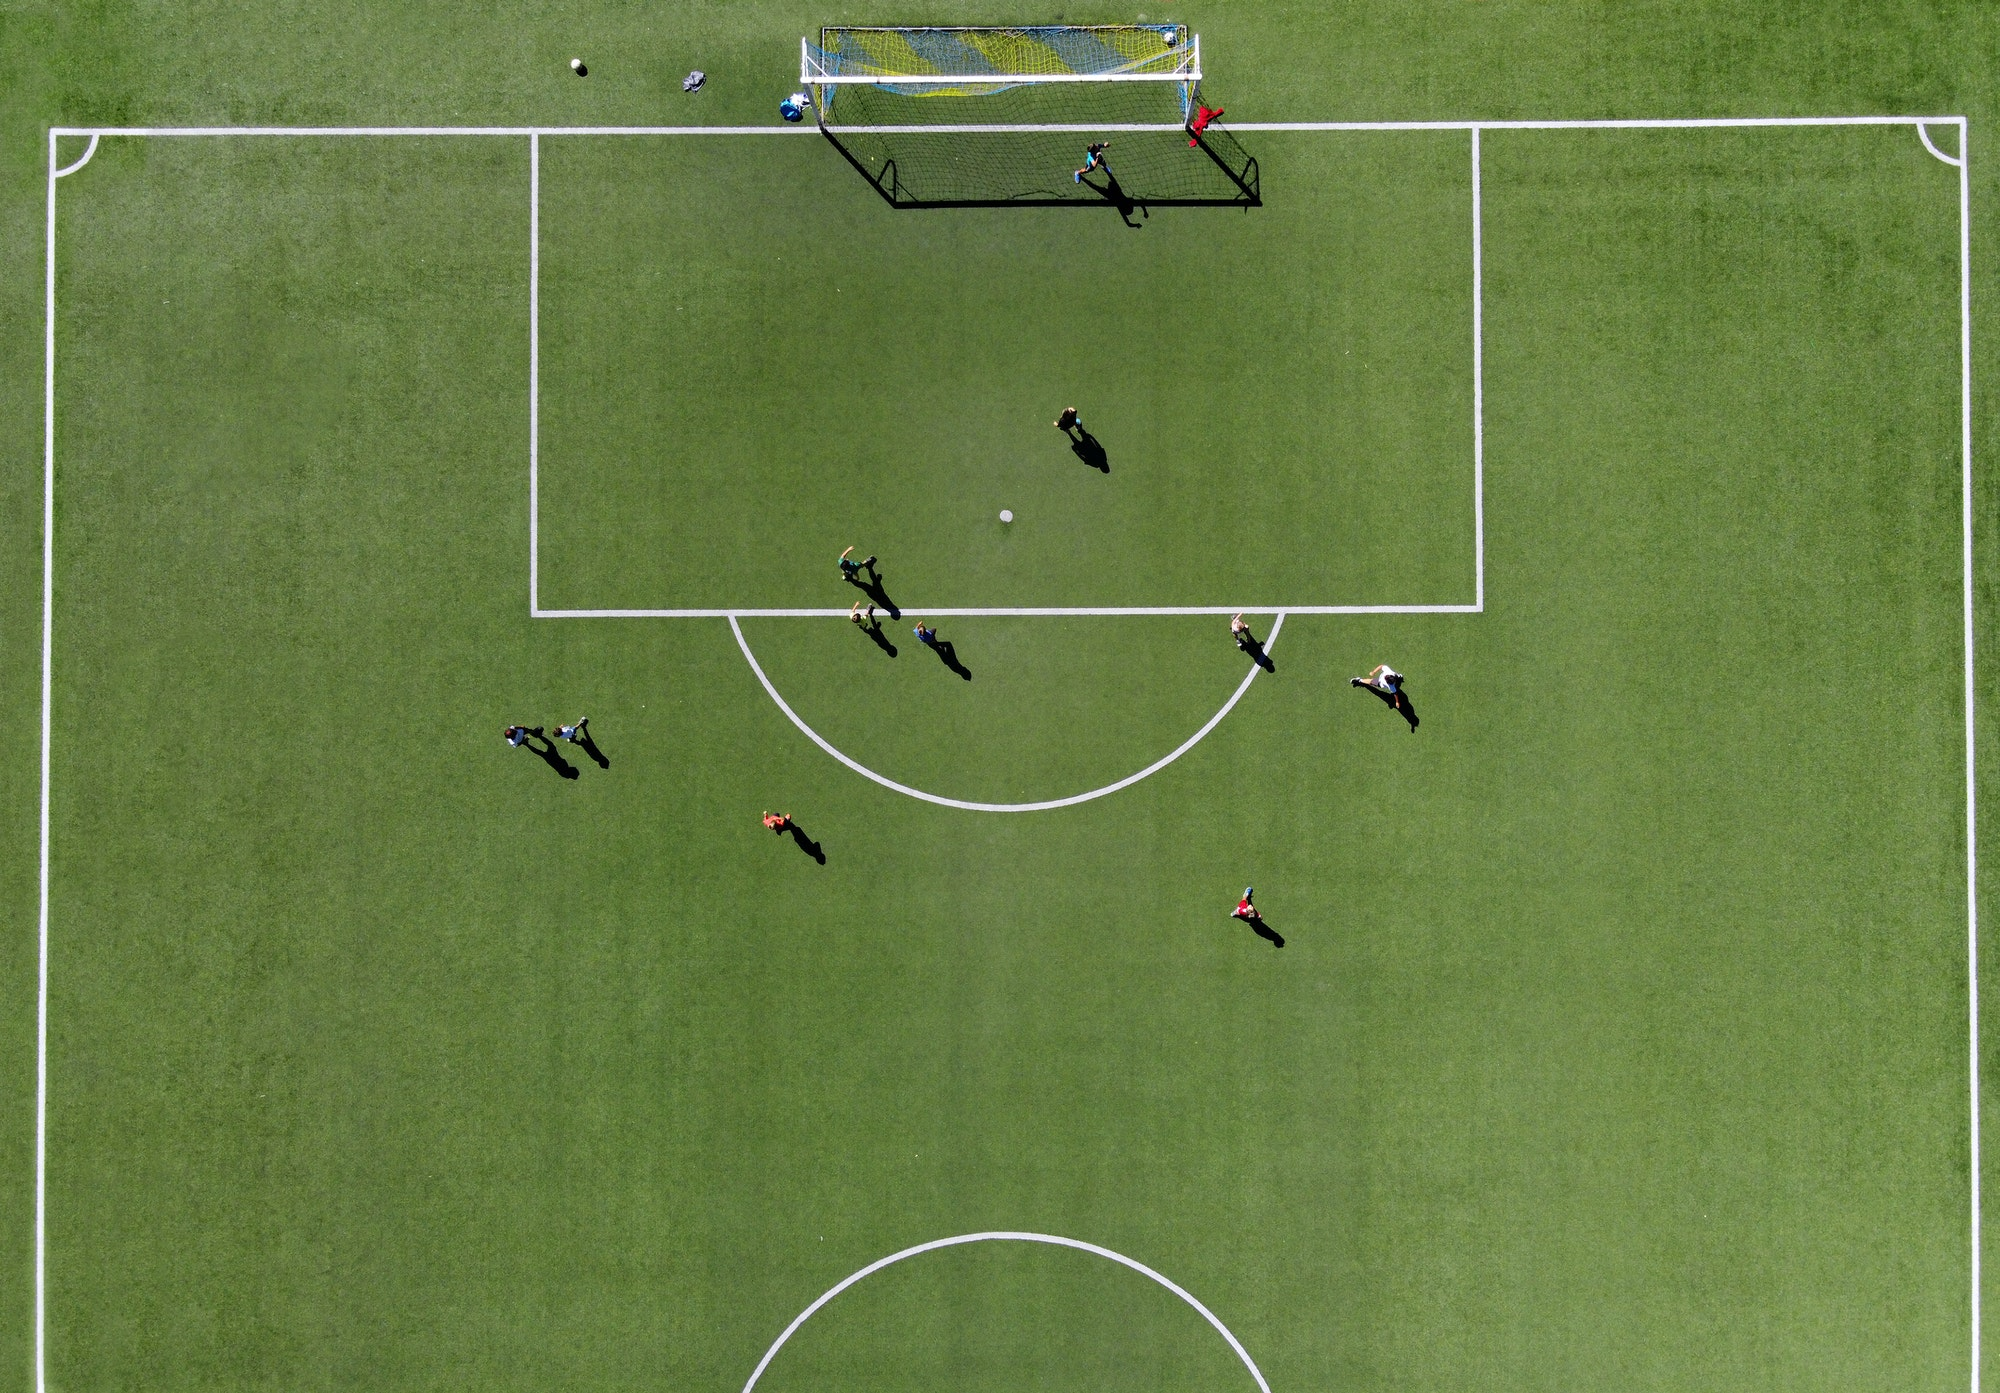 Soccer players on a green sports field